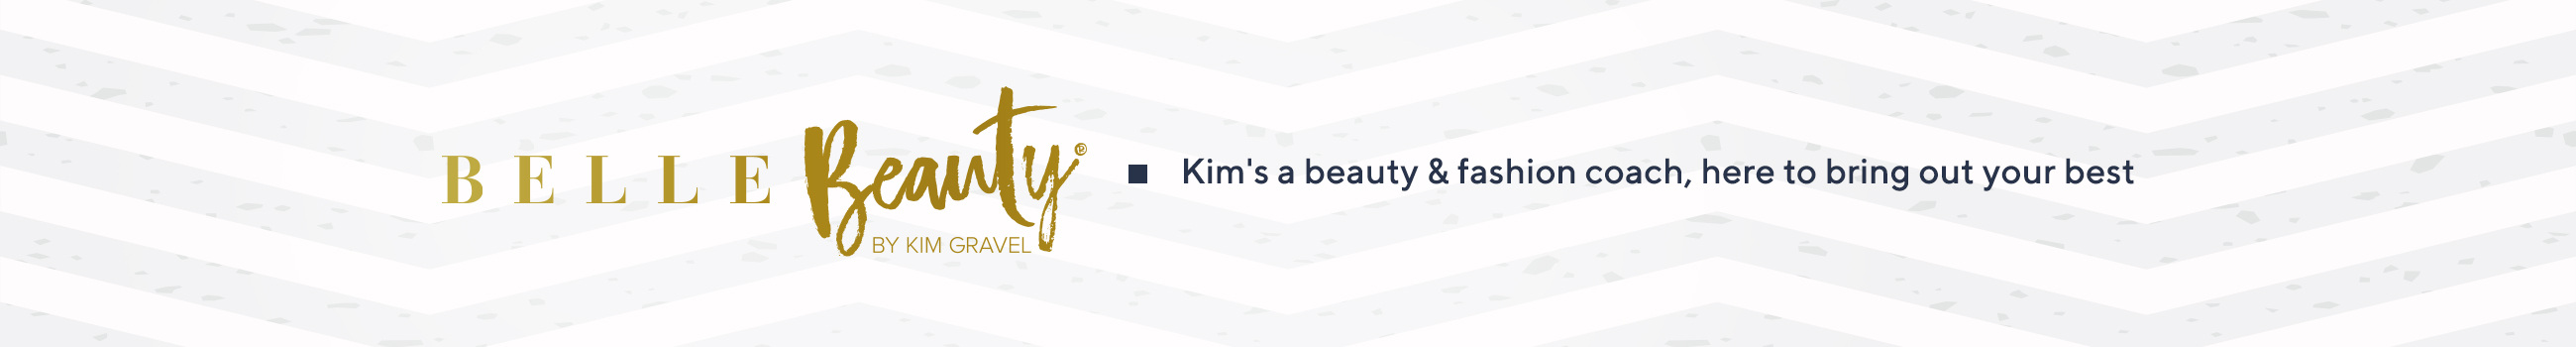 Kim's a beauty & fashion coach, here to bring out your best